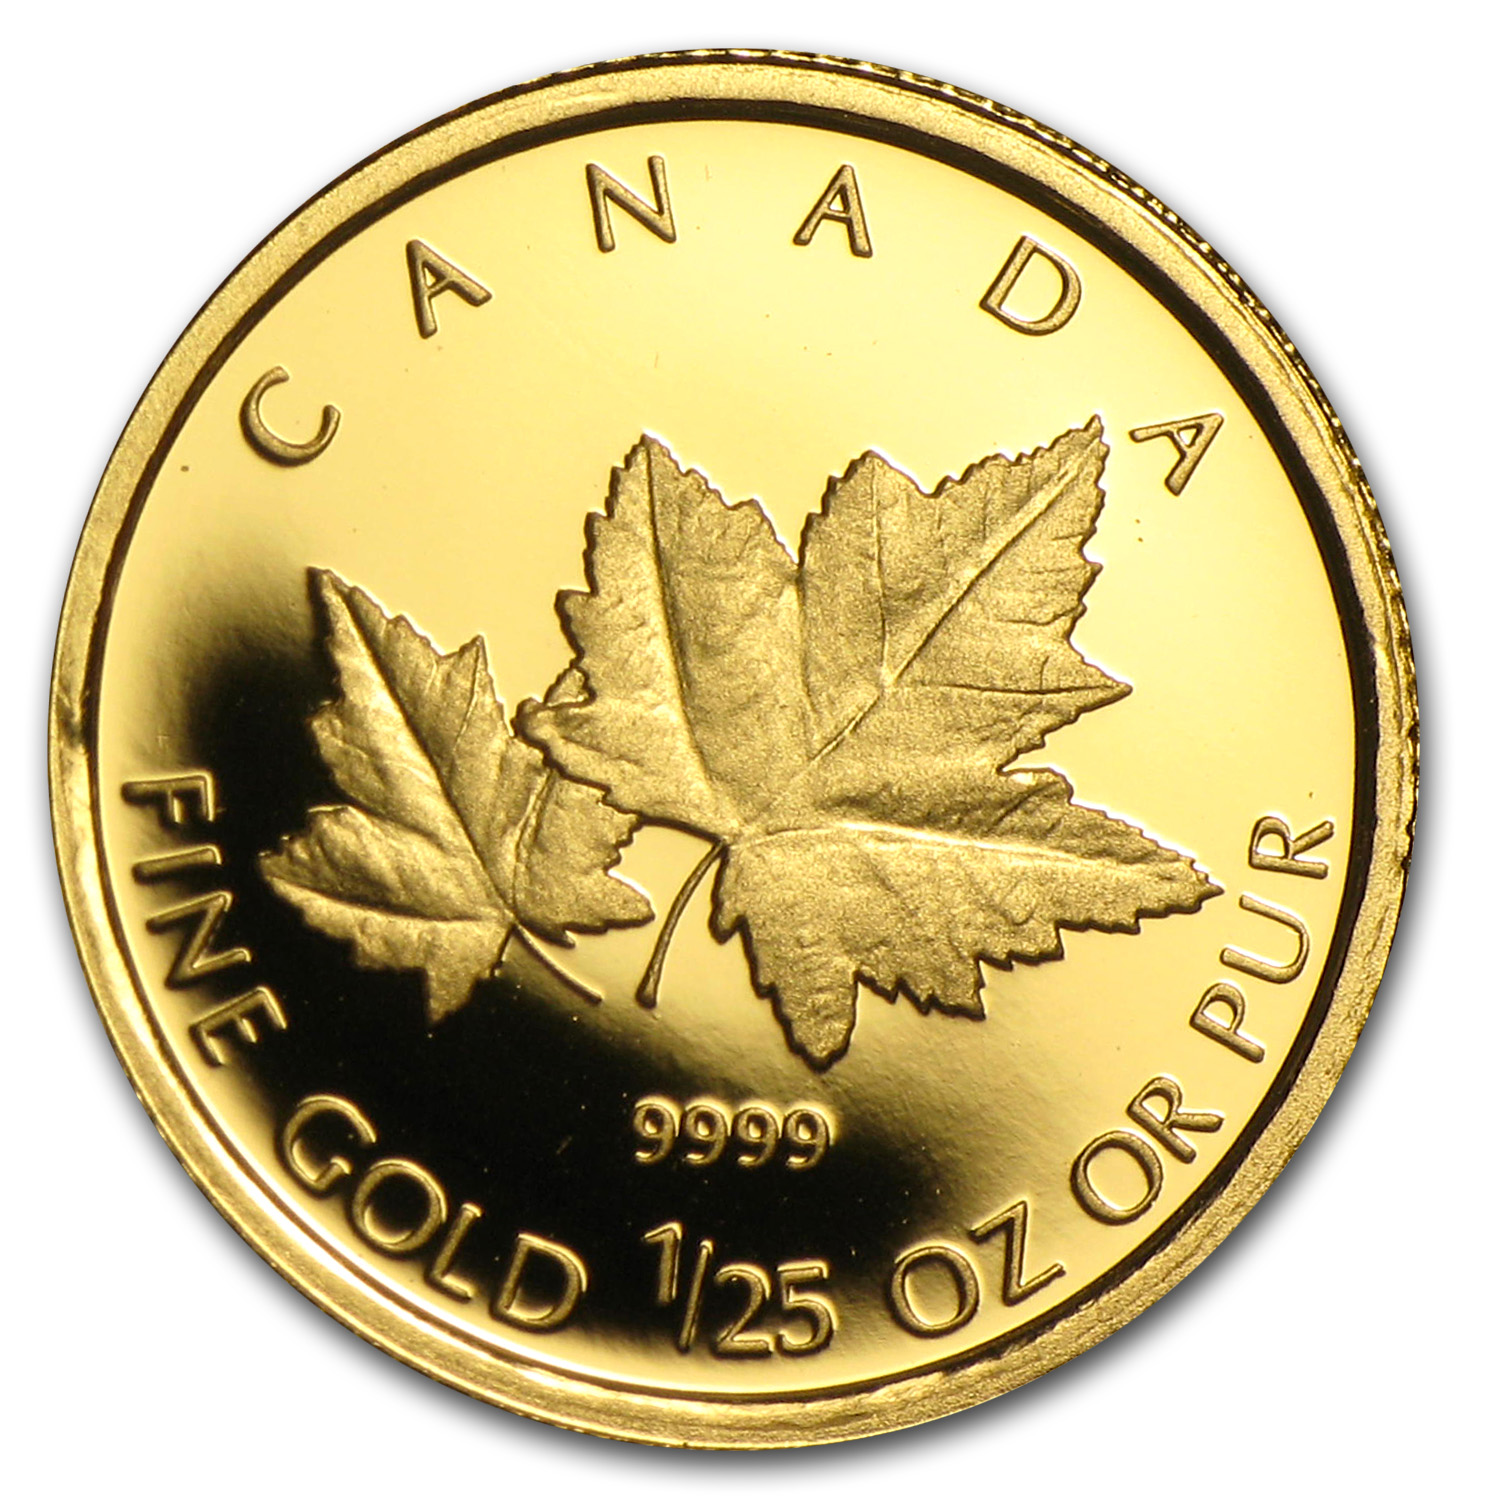 2009 1/25 oz Gold Canadian $0.50 - Red Maple